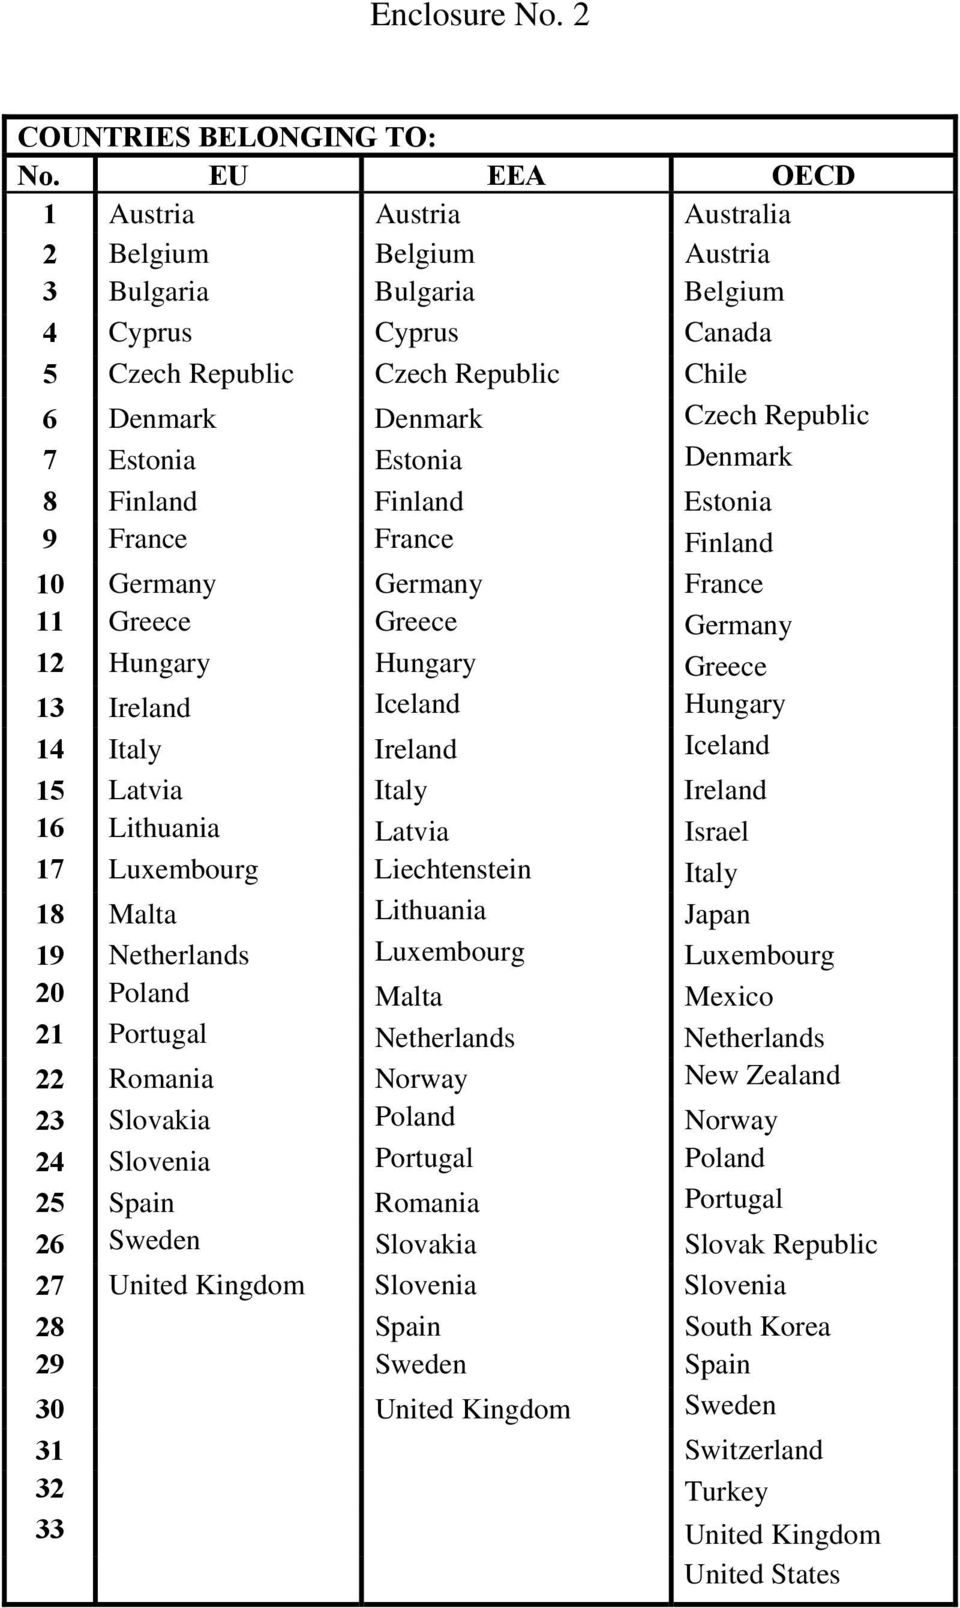 Estonia Denmark 8 Finland Finland Estonia 9 France France Finland 10 Germany Germany France 11 Greece Greece Germany 12 Hungary Hungary Greece 13 Ireland Iceland Hungary 14 Italy Ireland Iceland 15